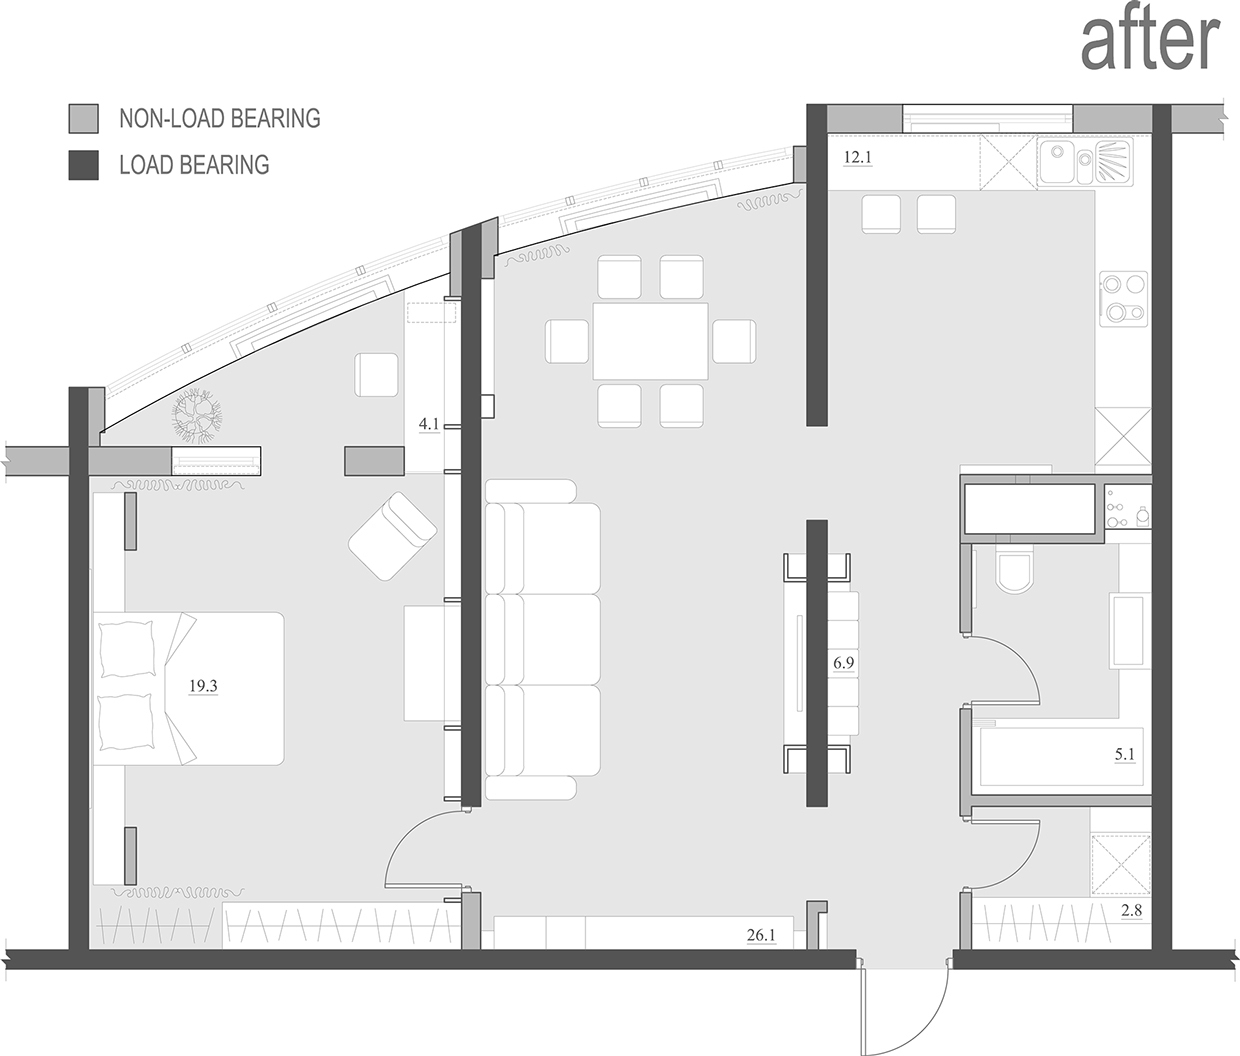 2 single bedroom apartment designs under 75 square meters for 2 bedroom apartment layout